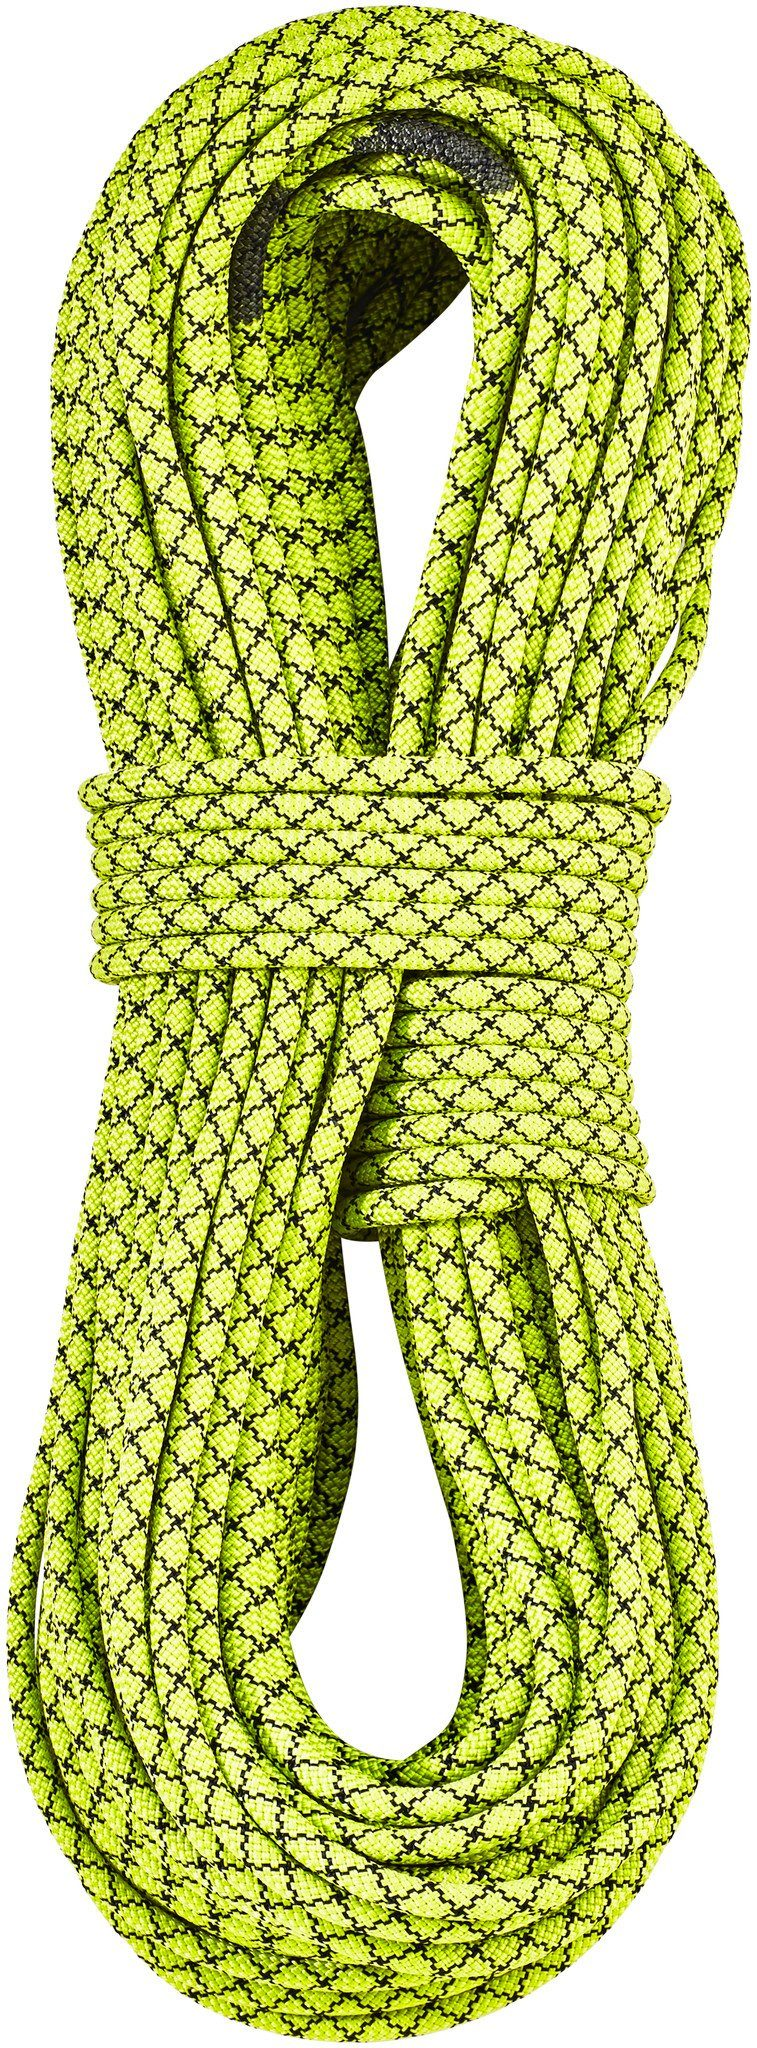 Edelrid Kletterseil »Swift Pro Dry Rope 8,9mm 70m«